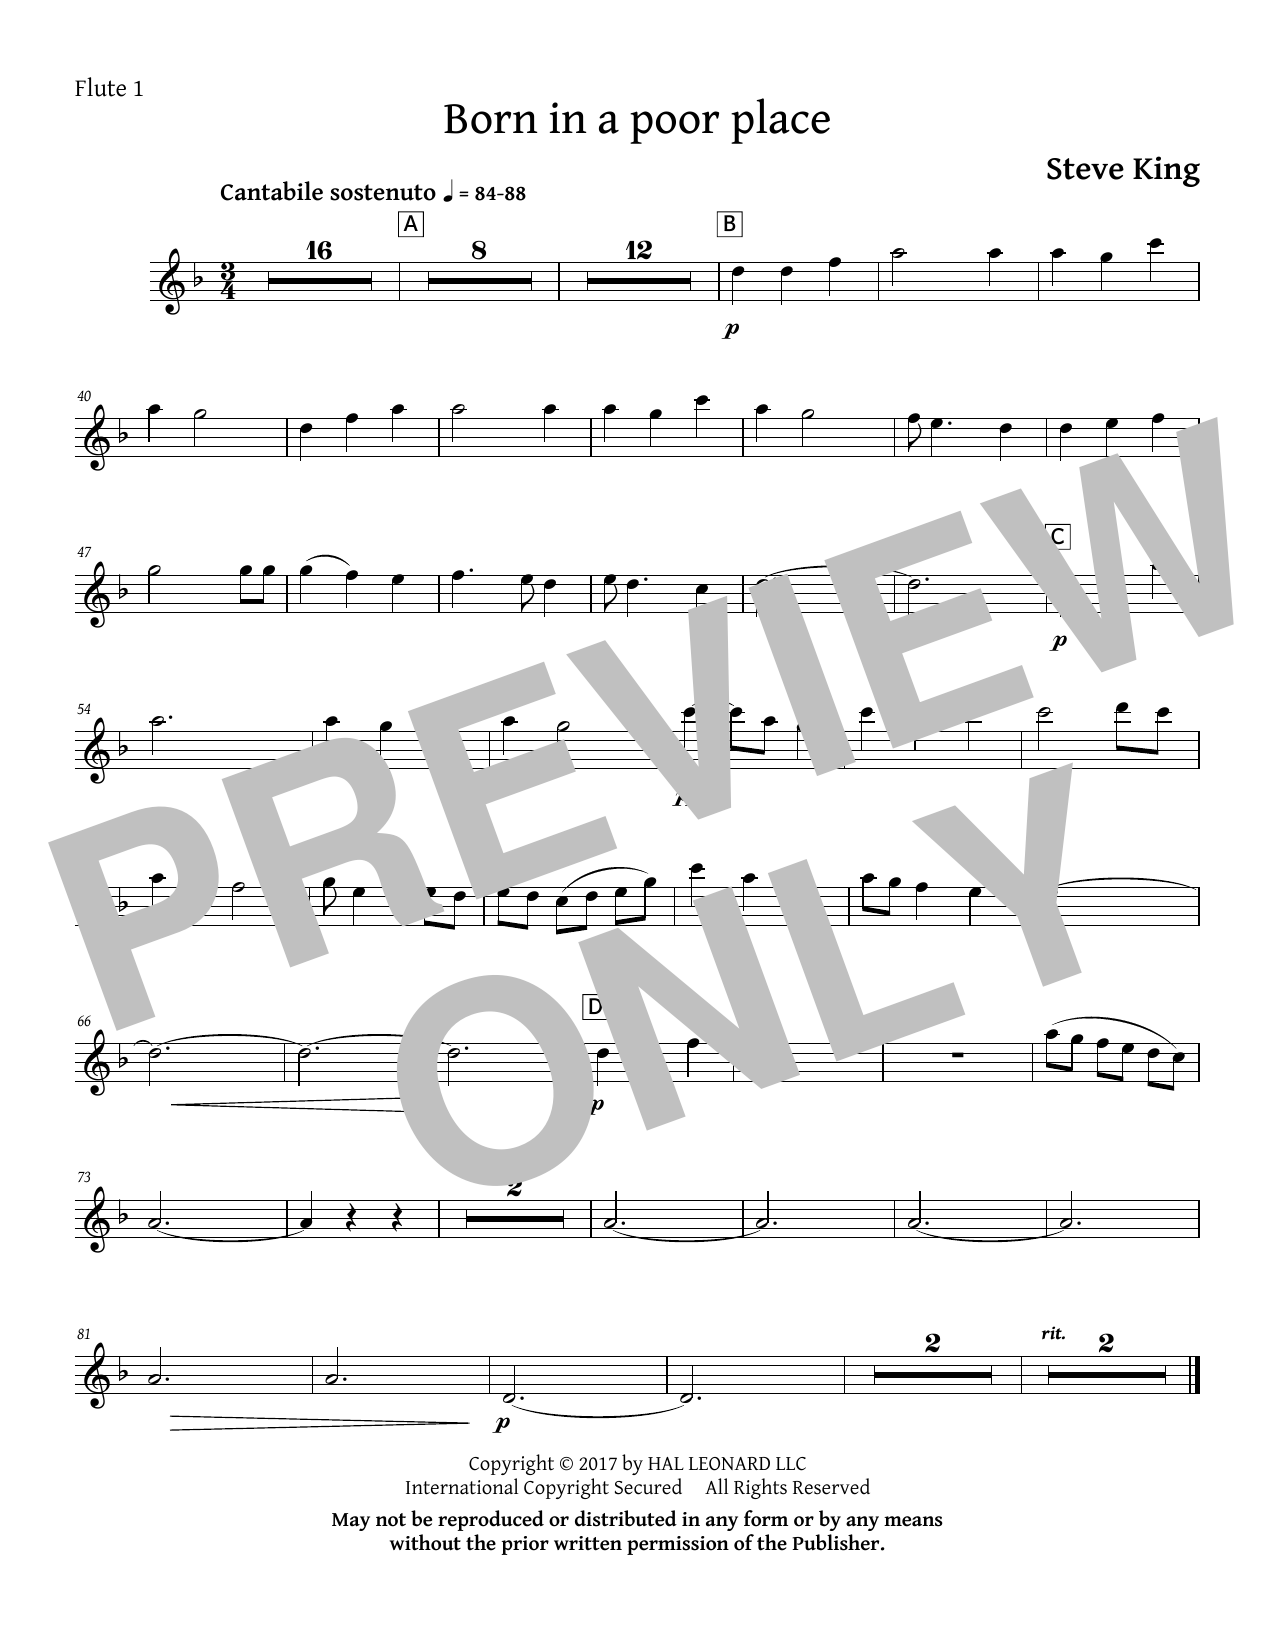 Born in a Poor Place - Flute 1 Sheet Music